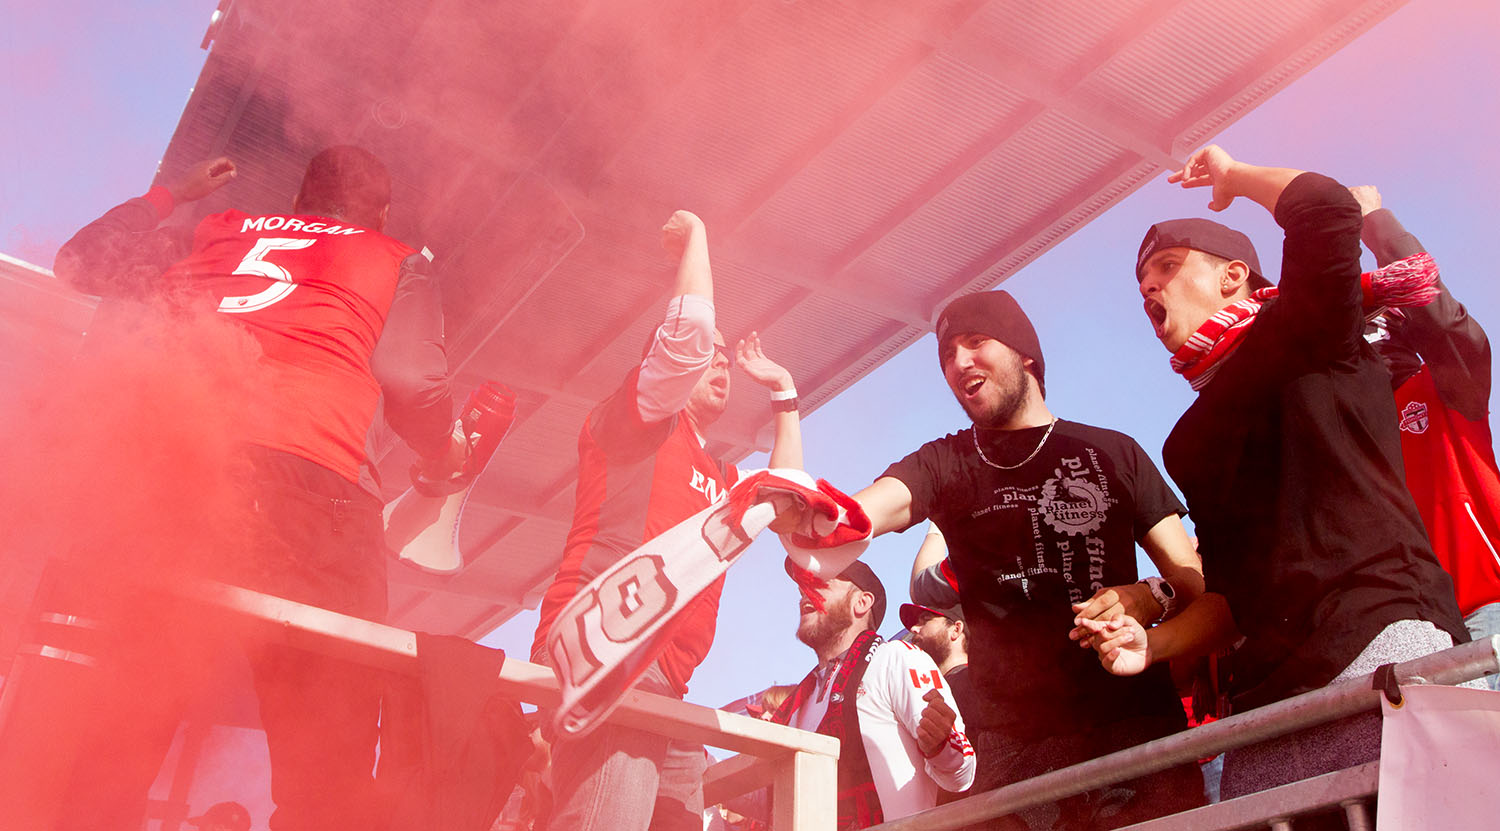 South End supporters celebrate amidst the red smoke after the first goal on the day. Image by Dennis Marciniak.